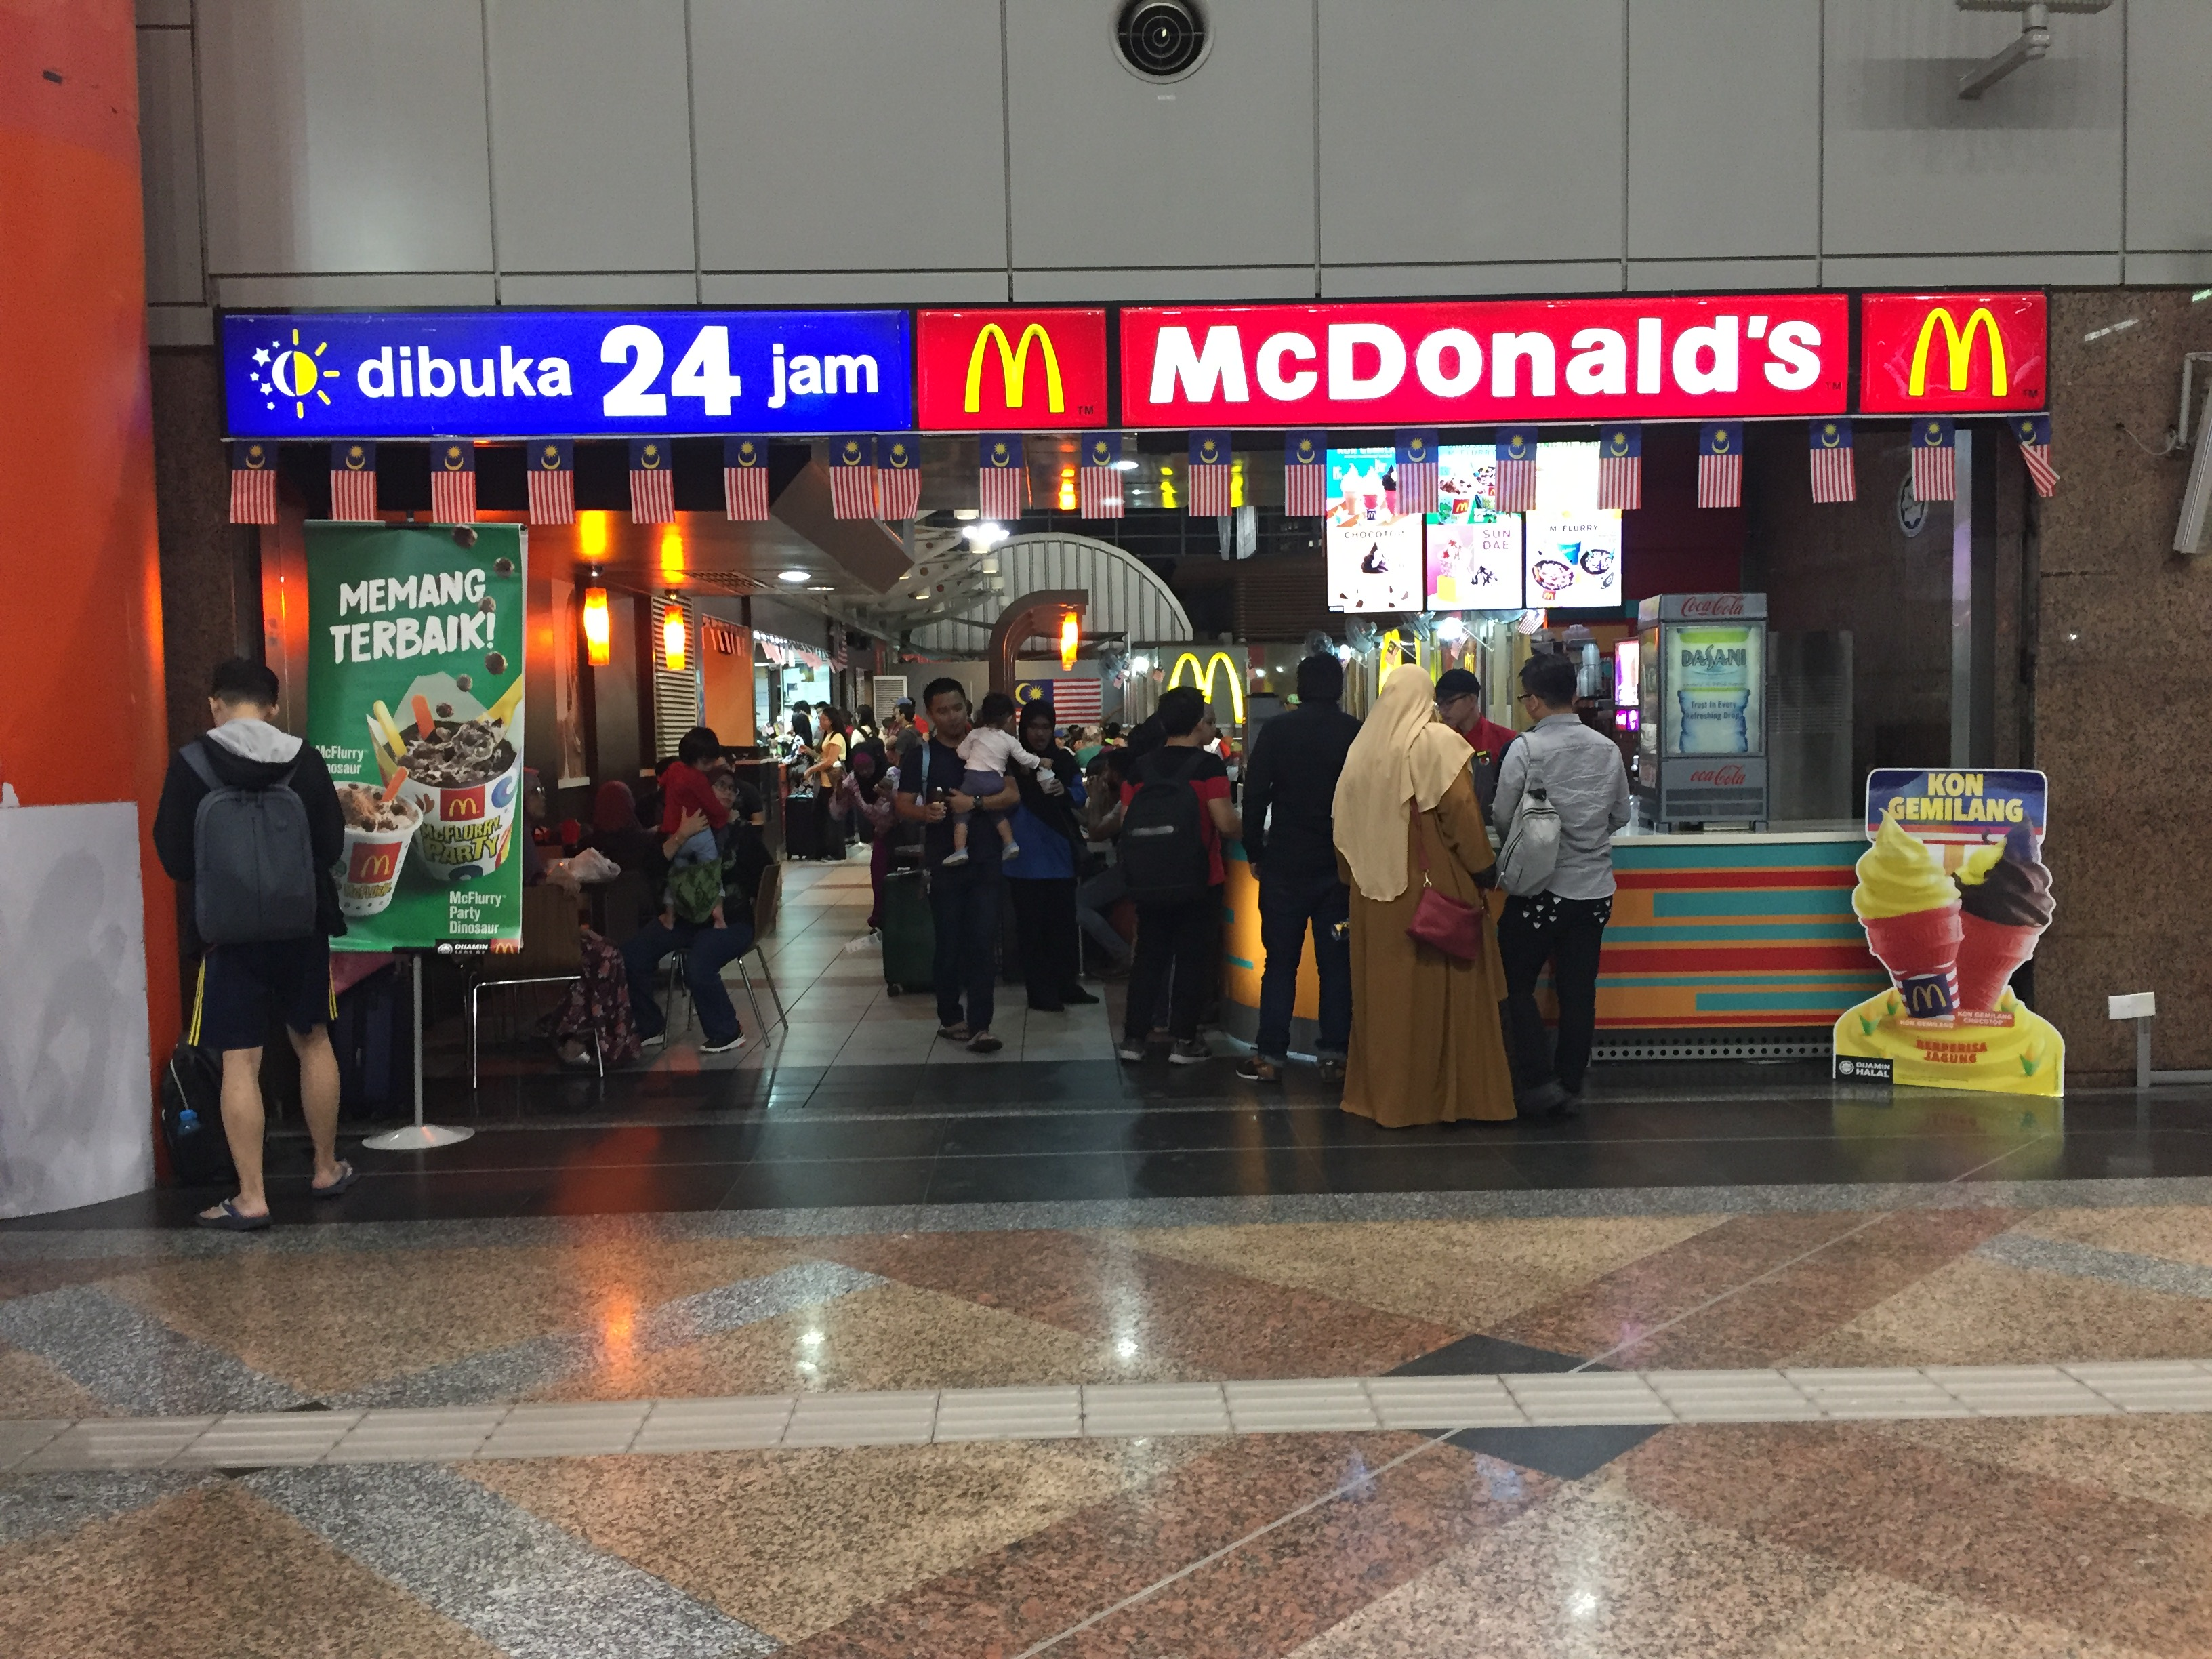 McDonald's fast food restaurant in KL Sentral